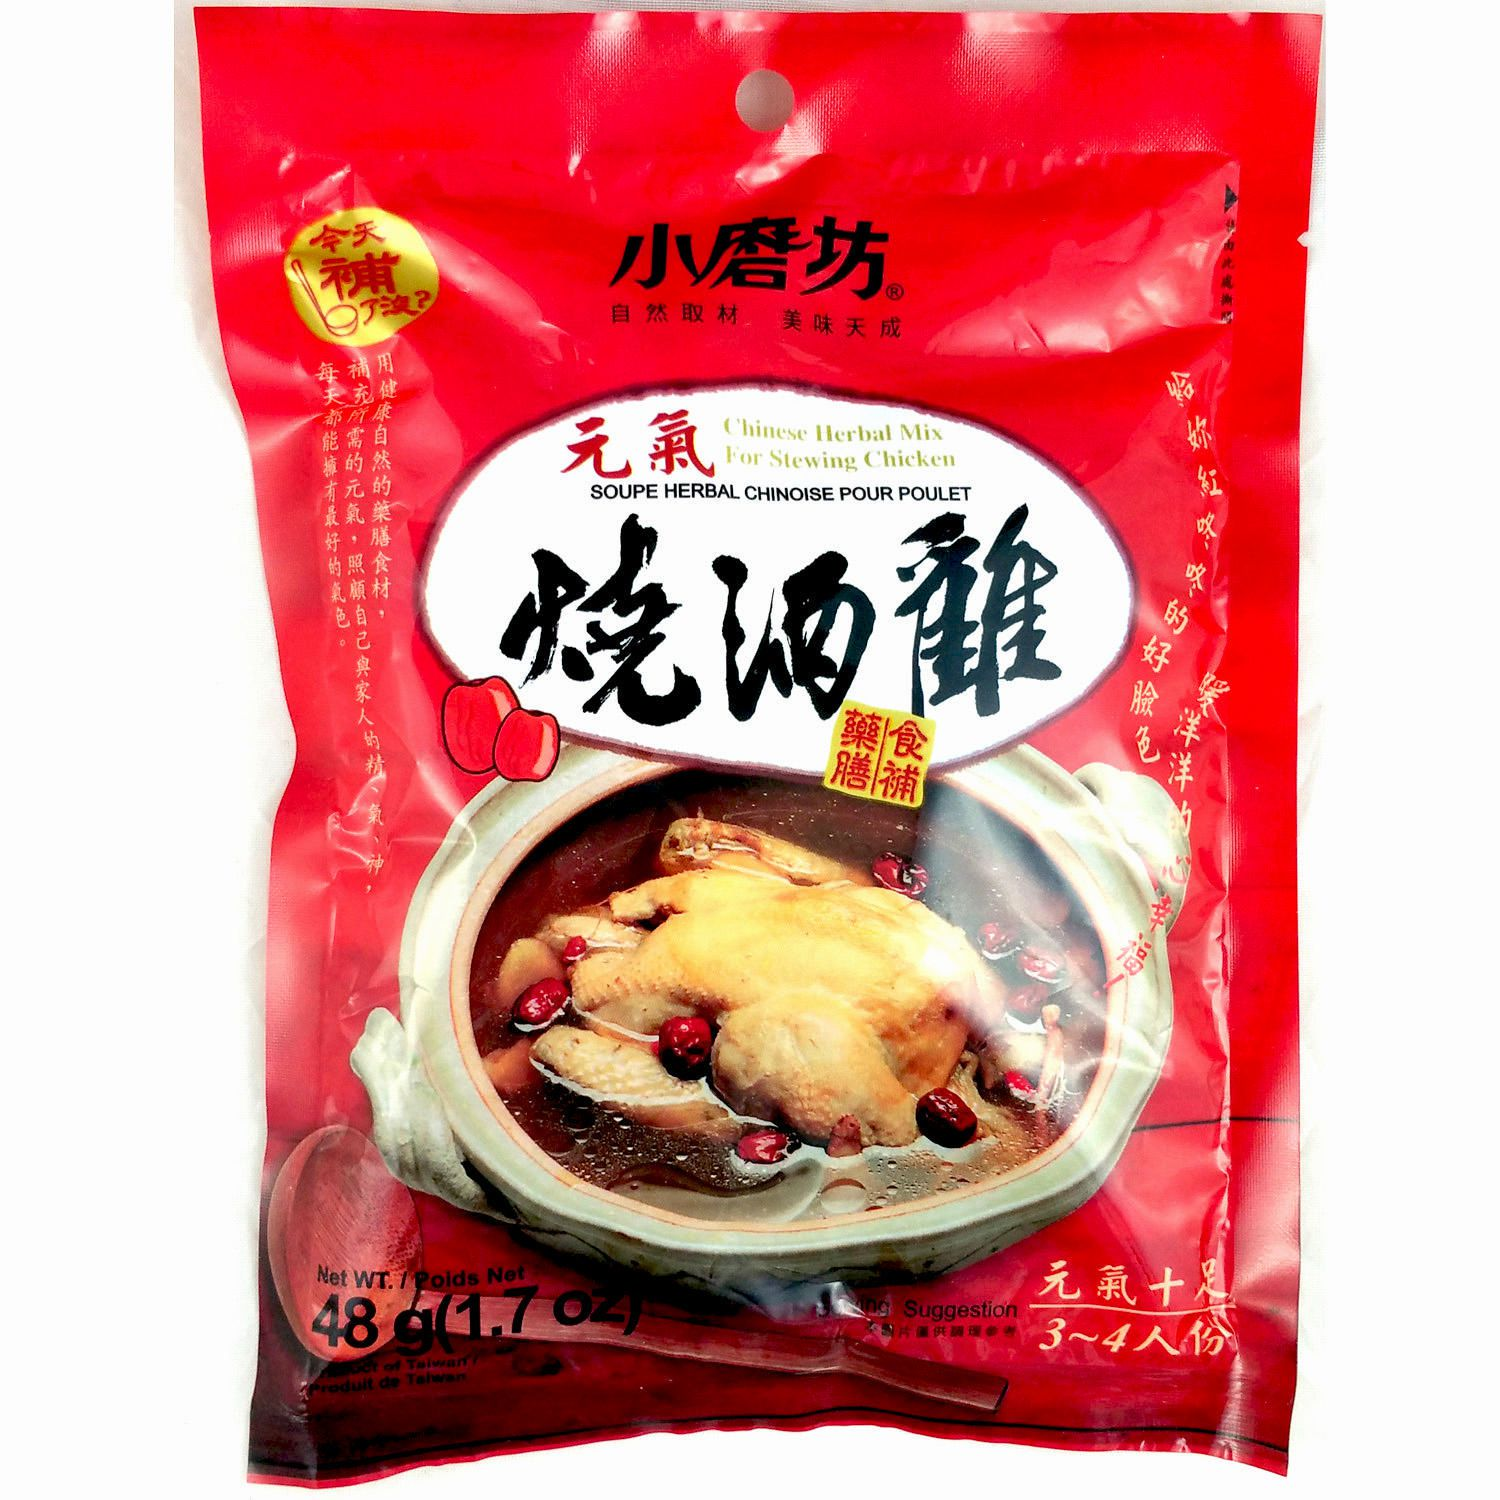 TOMAX CHINESE HERBAL MIX FOR STEWING CHICKEN